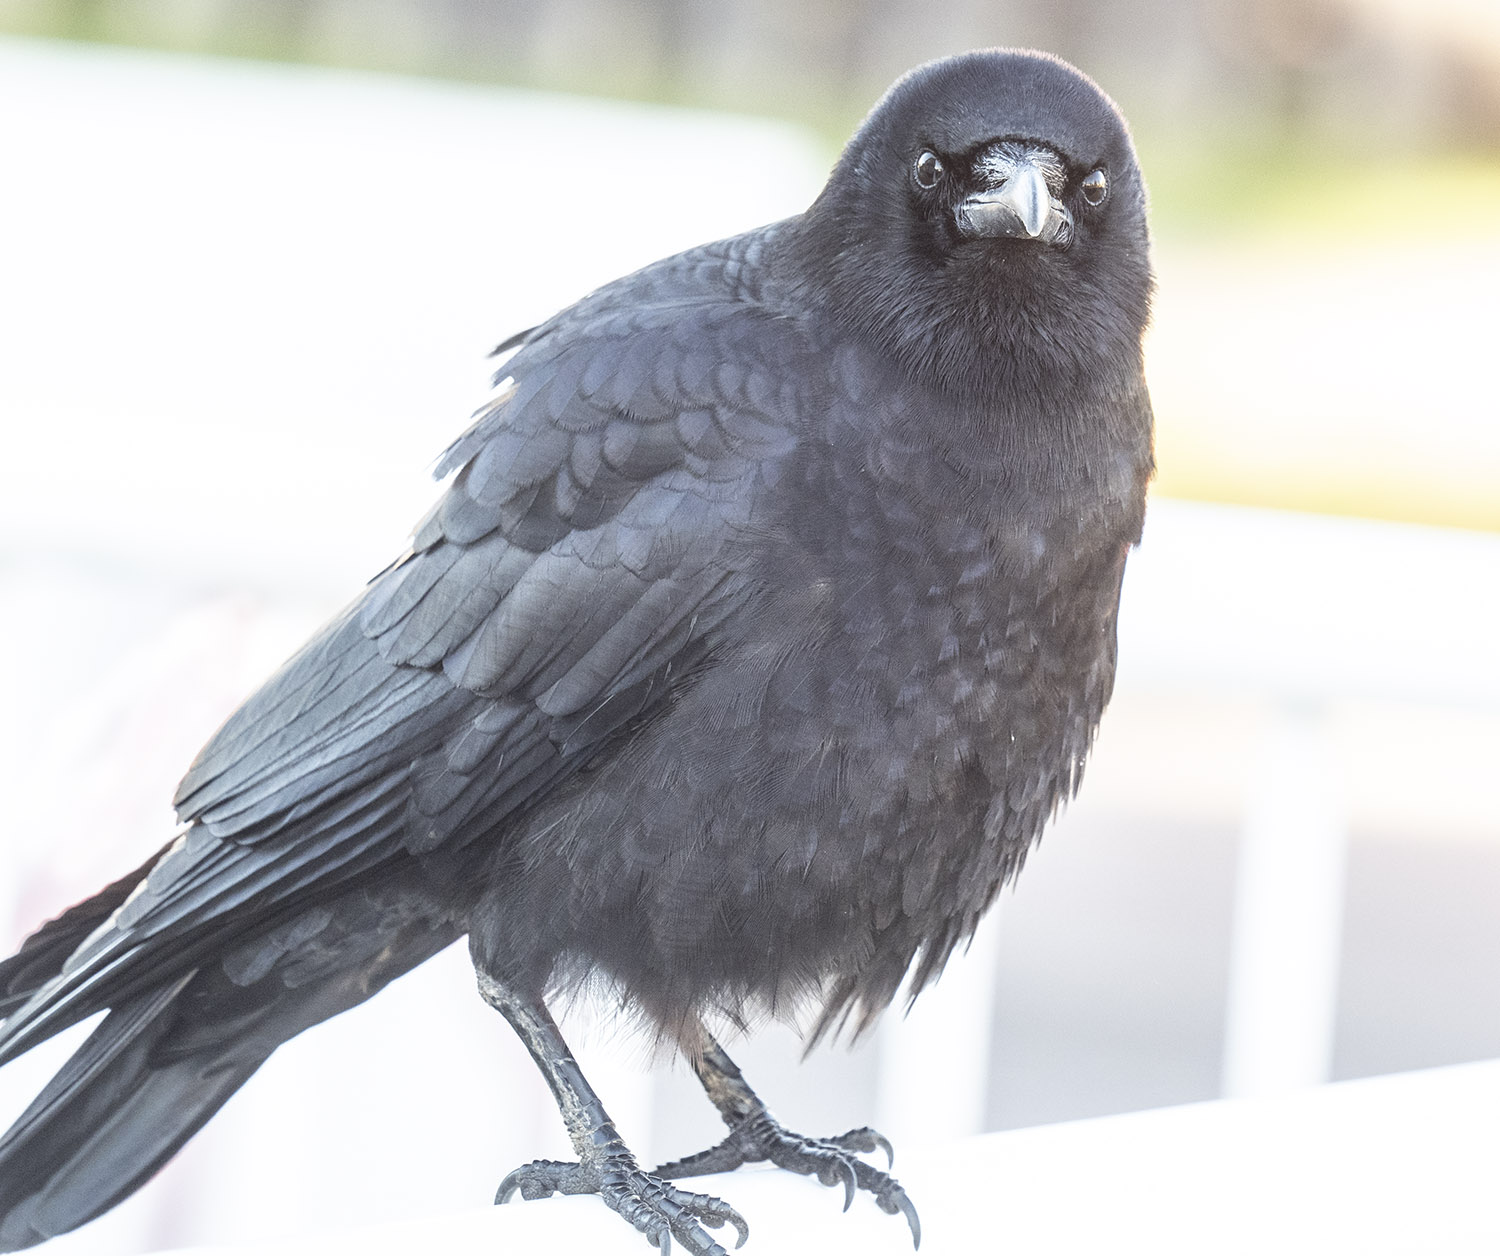 Slocan Street Crow Dec 2018